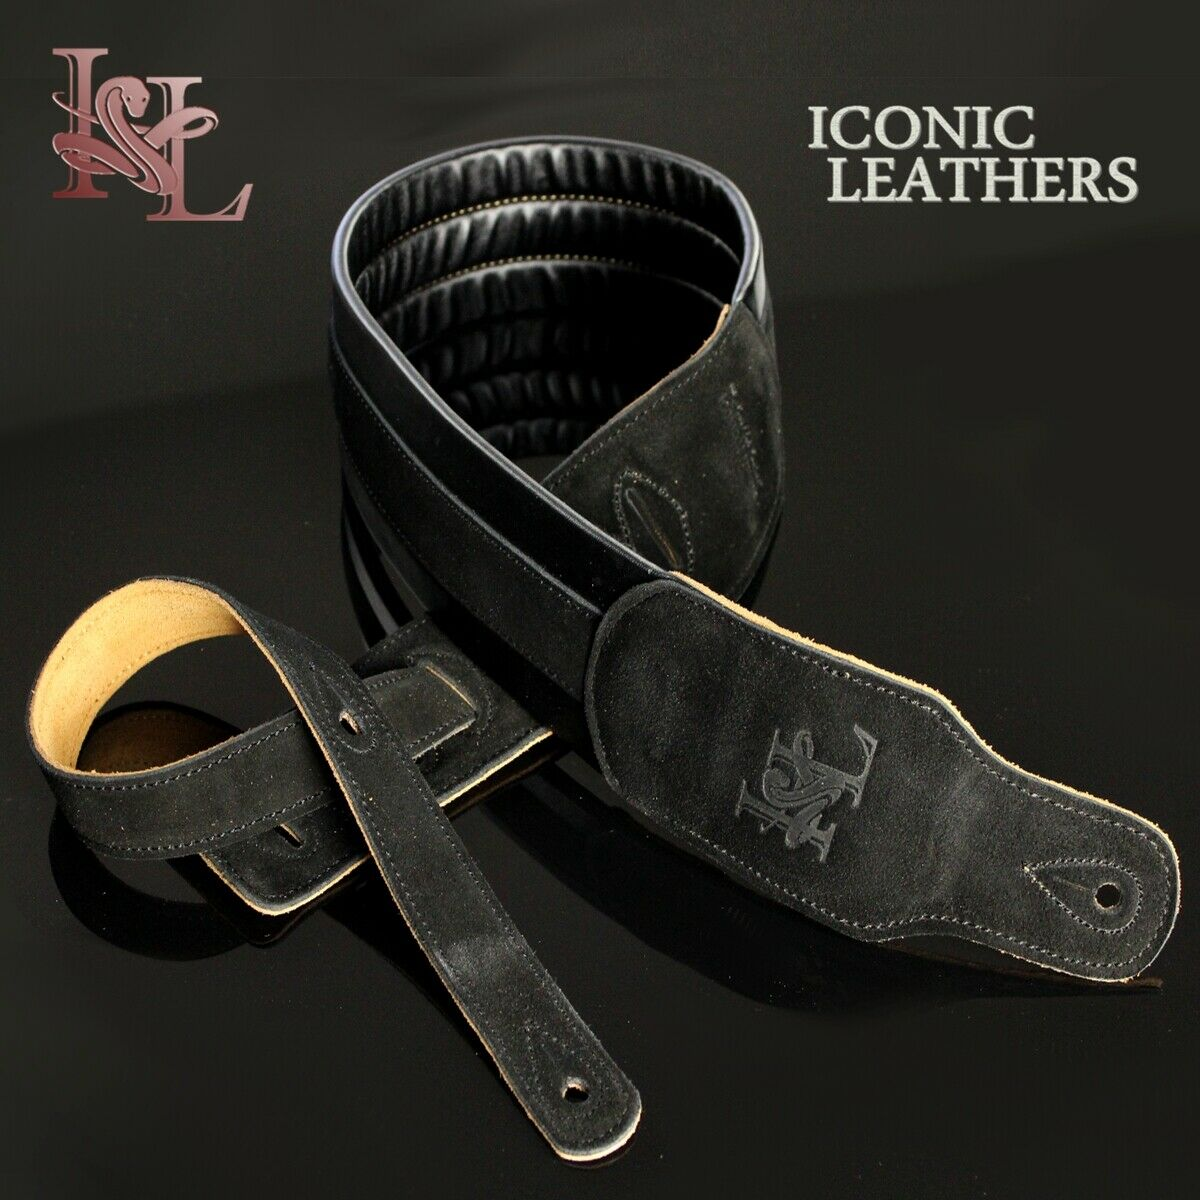 Iconic Leathers Padded SOFT LIGHT Sueded Leather Black Guita